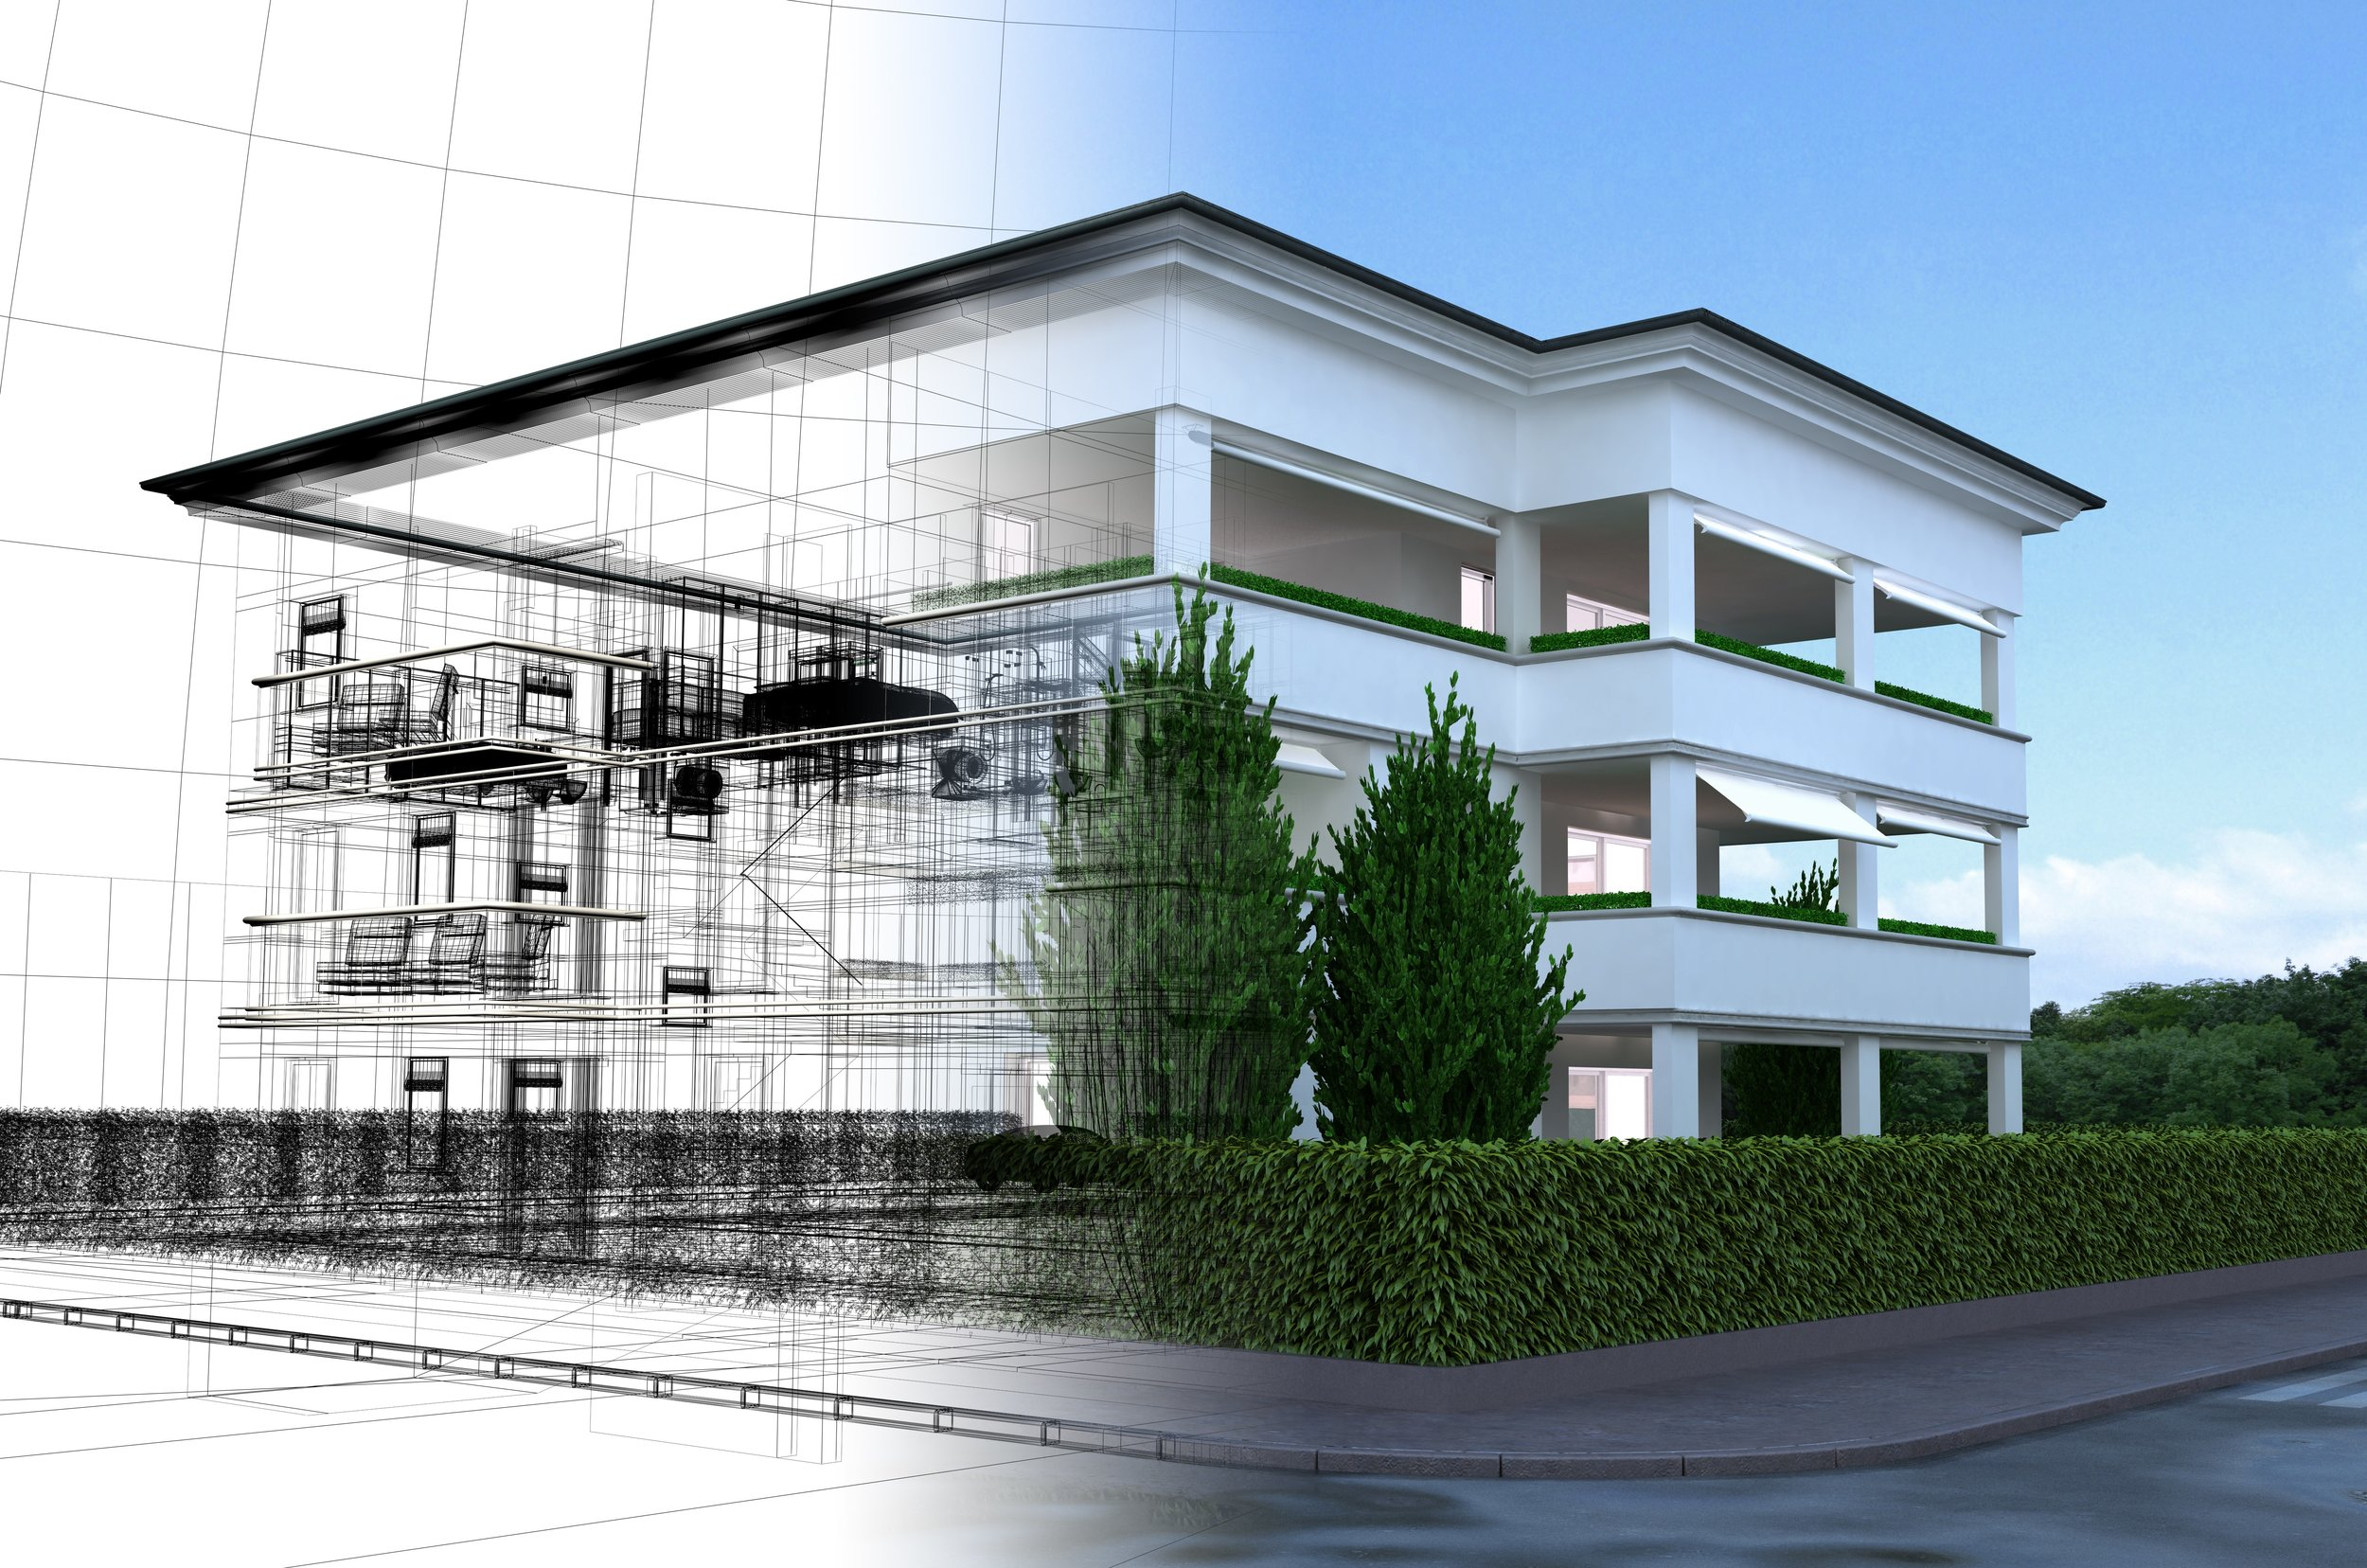 Visualization - ARCHICAD can produce amazing  out-of-the-box renderings and even virtual reality with BIMX.